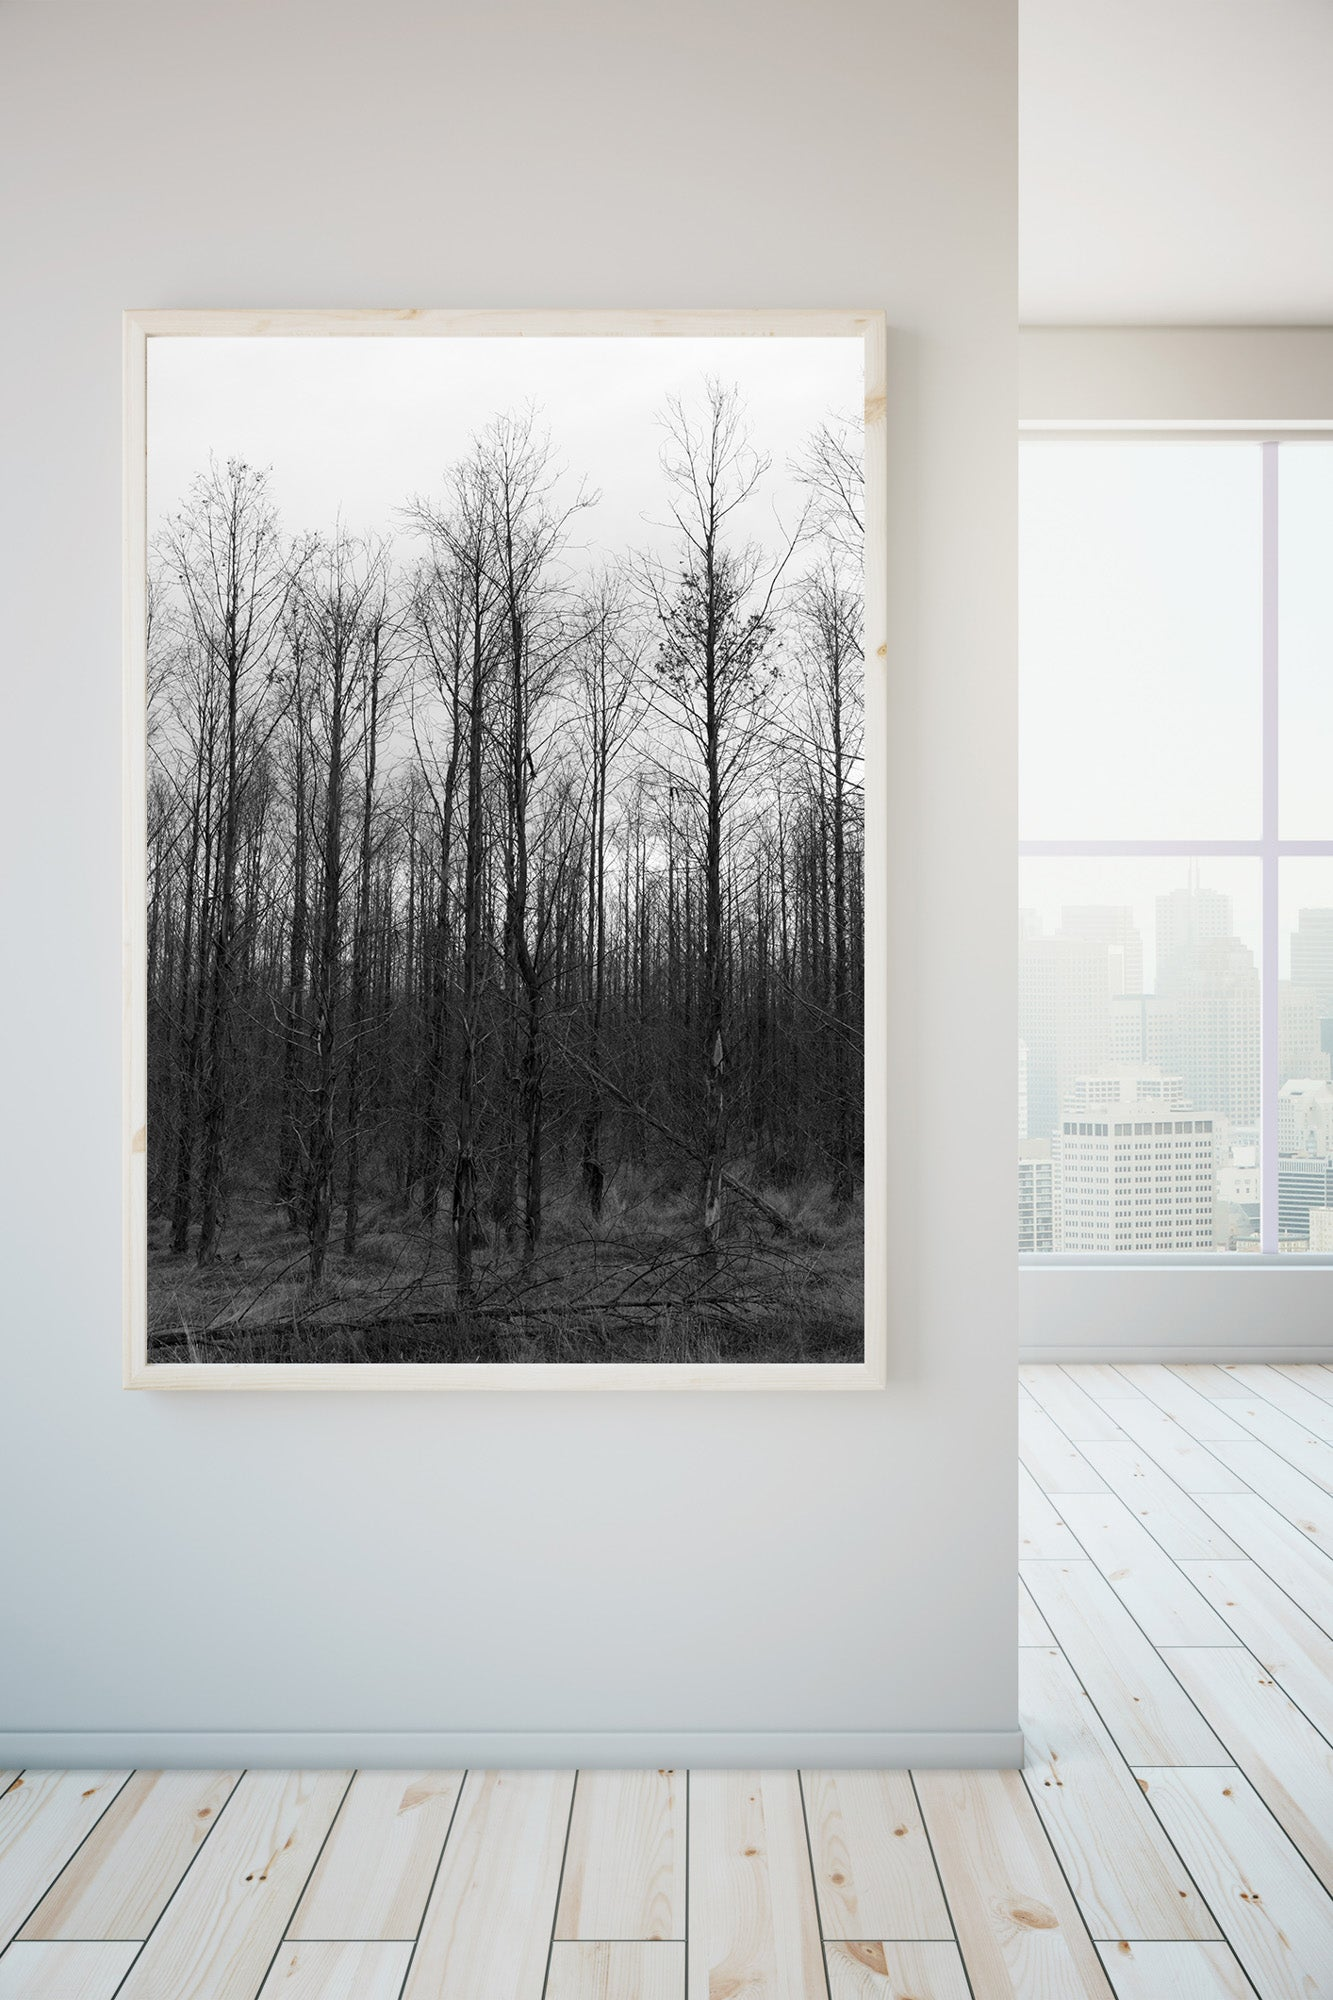 A photographic art gallery wall.A photograph of Birch trees in a forest. The sky is great & the trees are dark & bare. photography, summer, photography, Artwork Prints, wall art,  Photographic prints, summer, Framed artwork,  Australian, cradle mountain